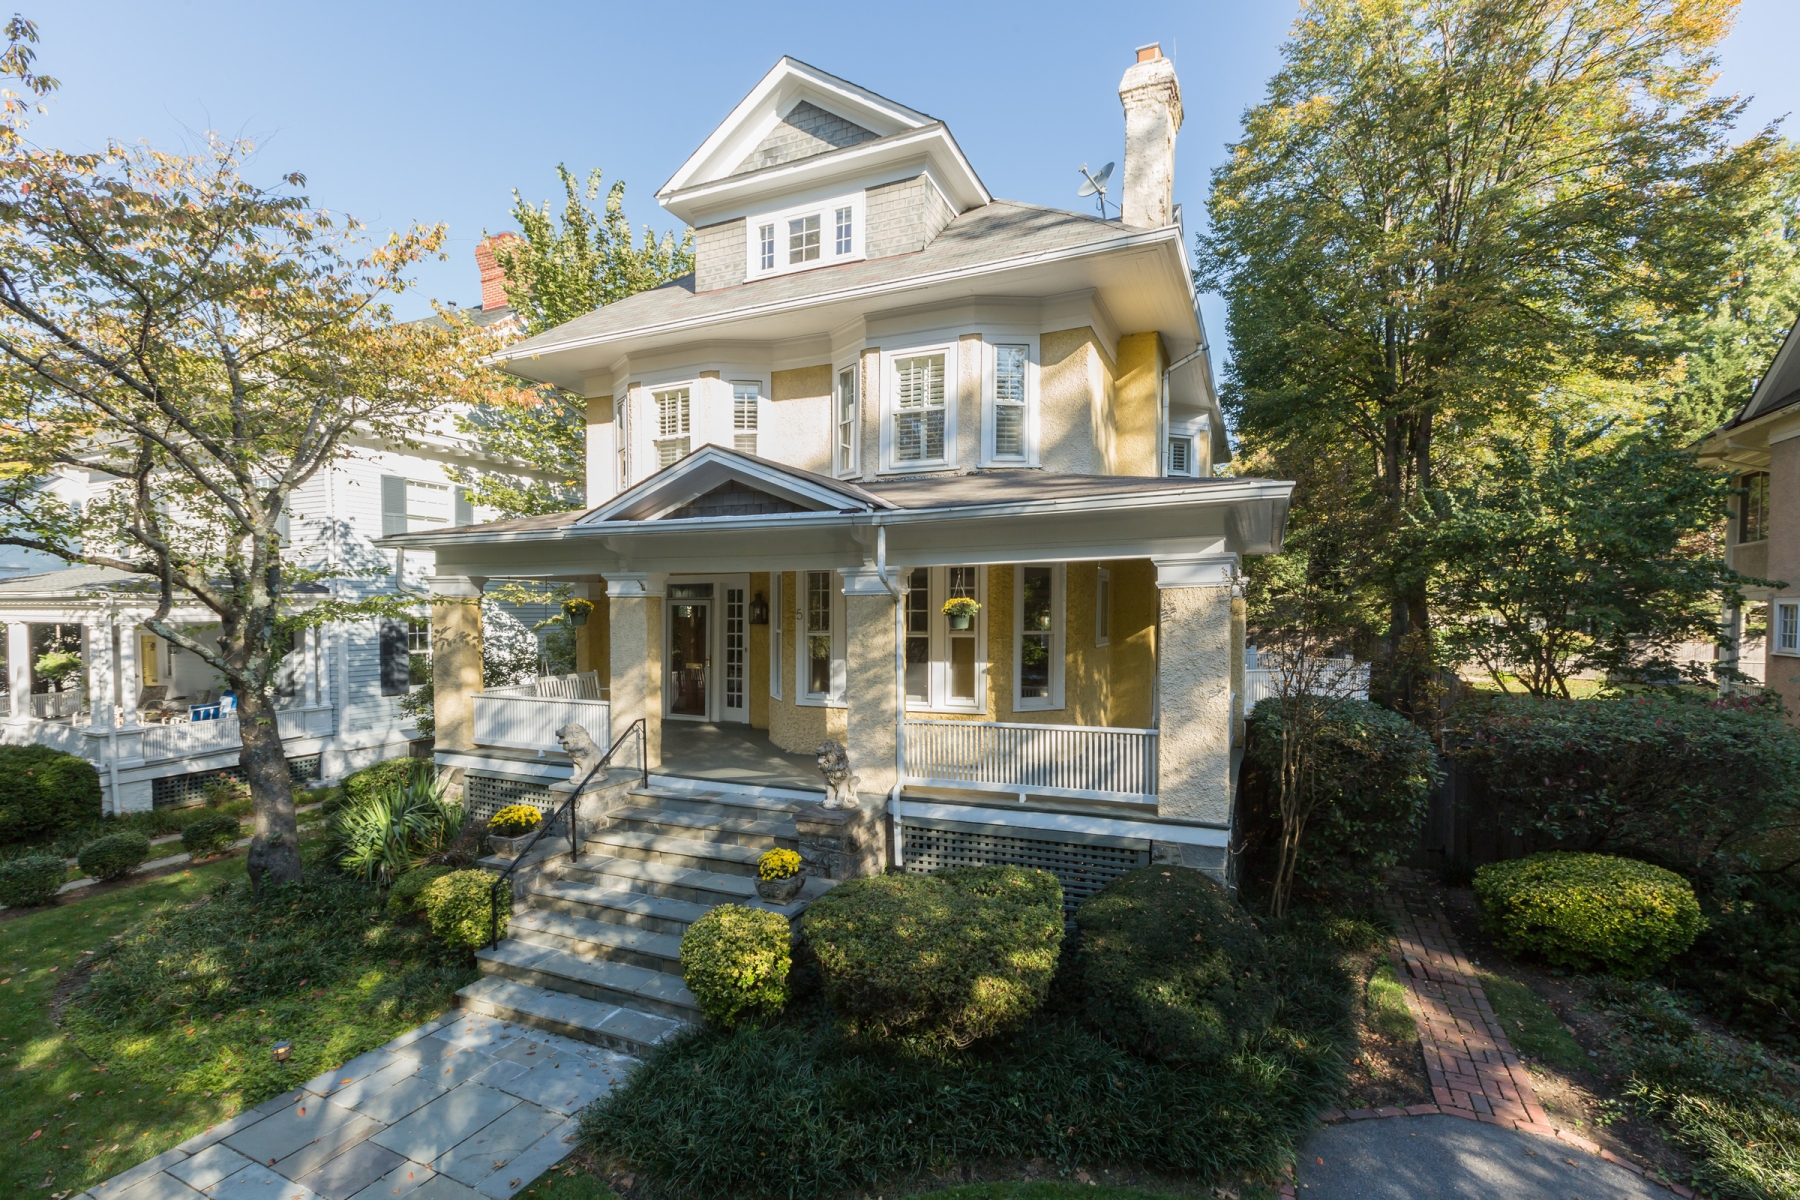 Single Family Home for Rent at 5 Irving Street E, Chevy Chase Chevy Chase, Maryland 20815 United States